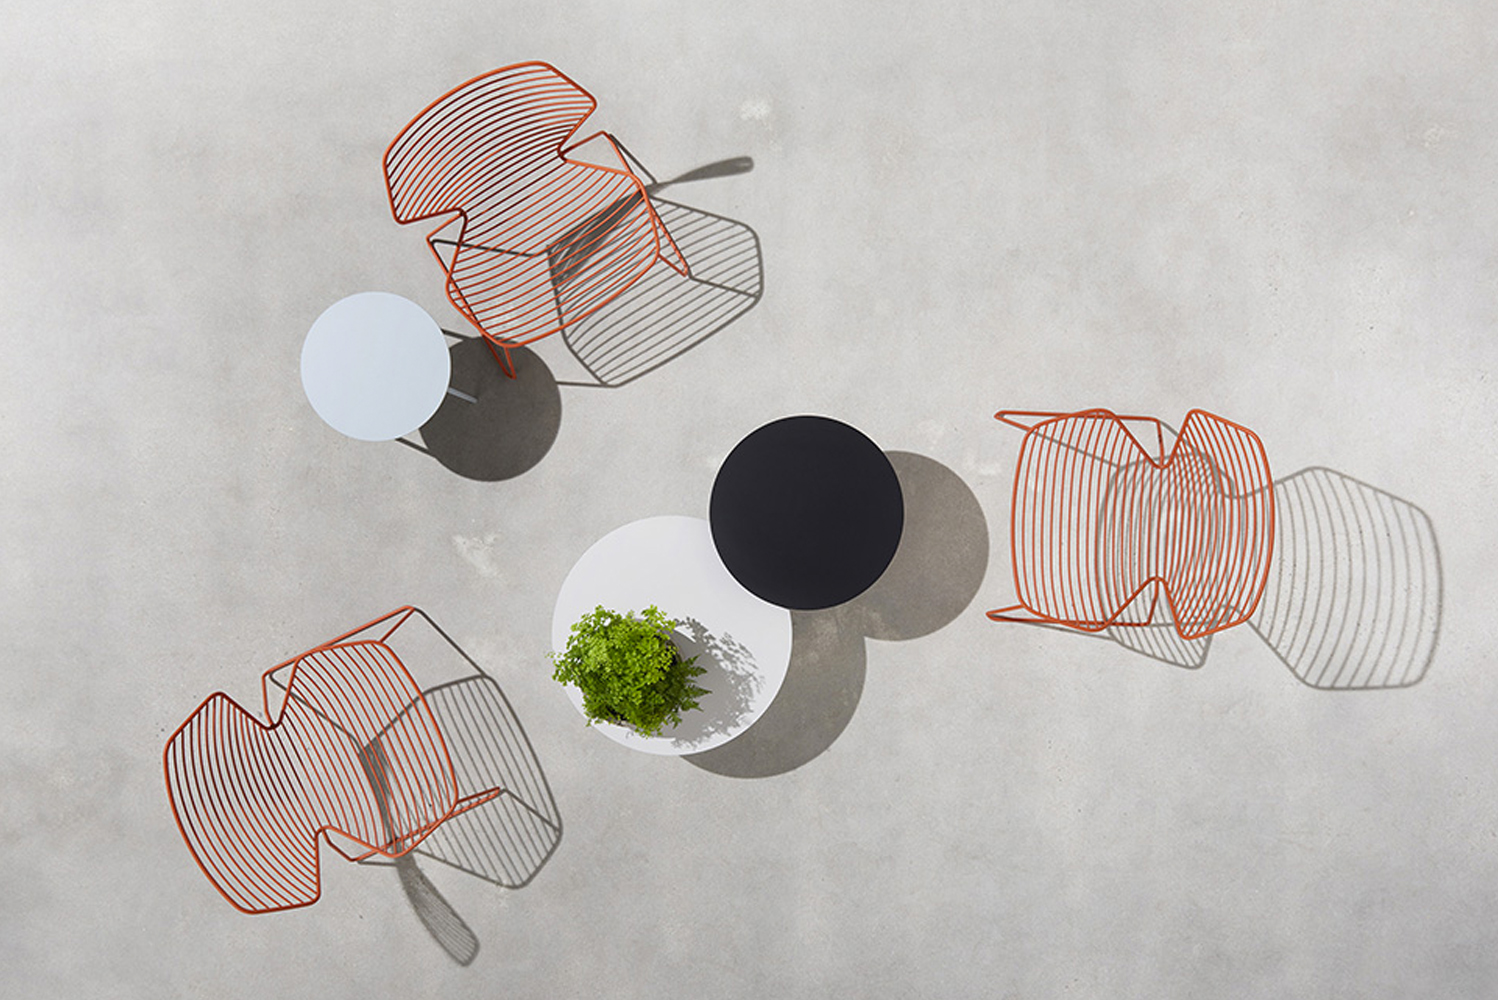 Introducing the Gingko wire lounge by Jehs+Laub for Davis Furniture.